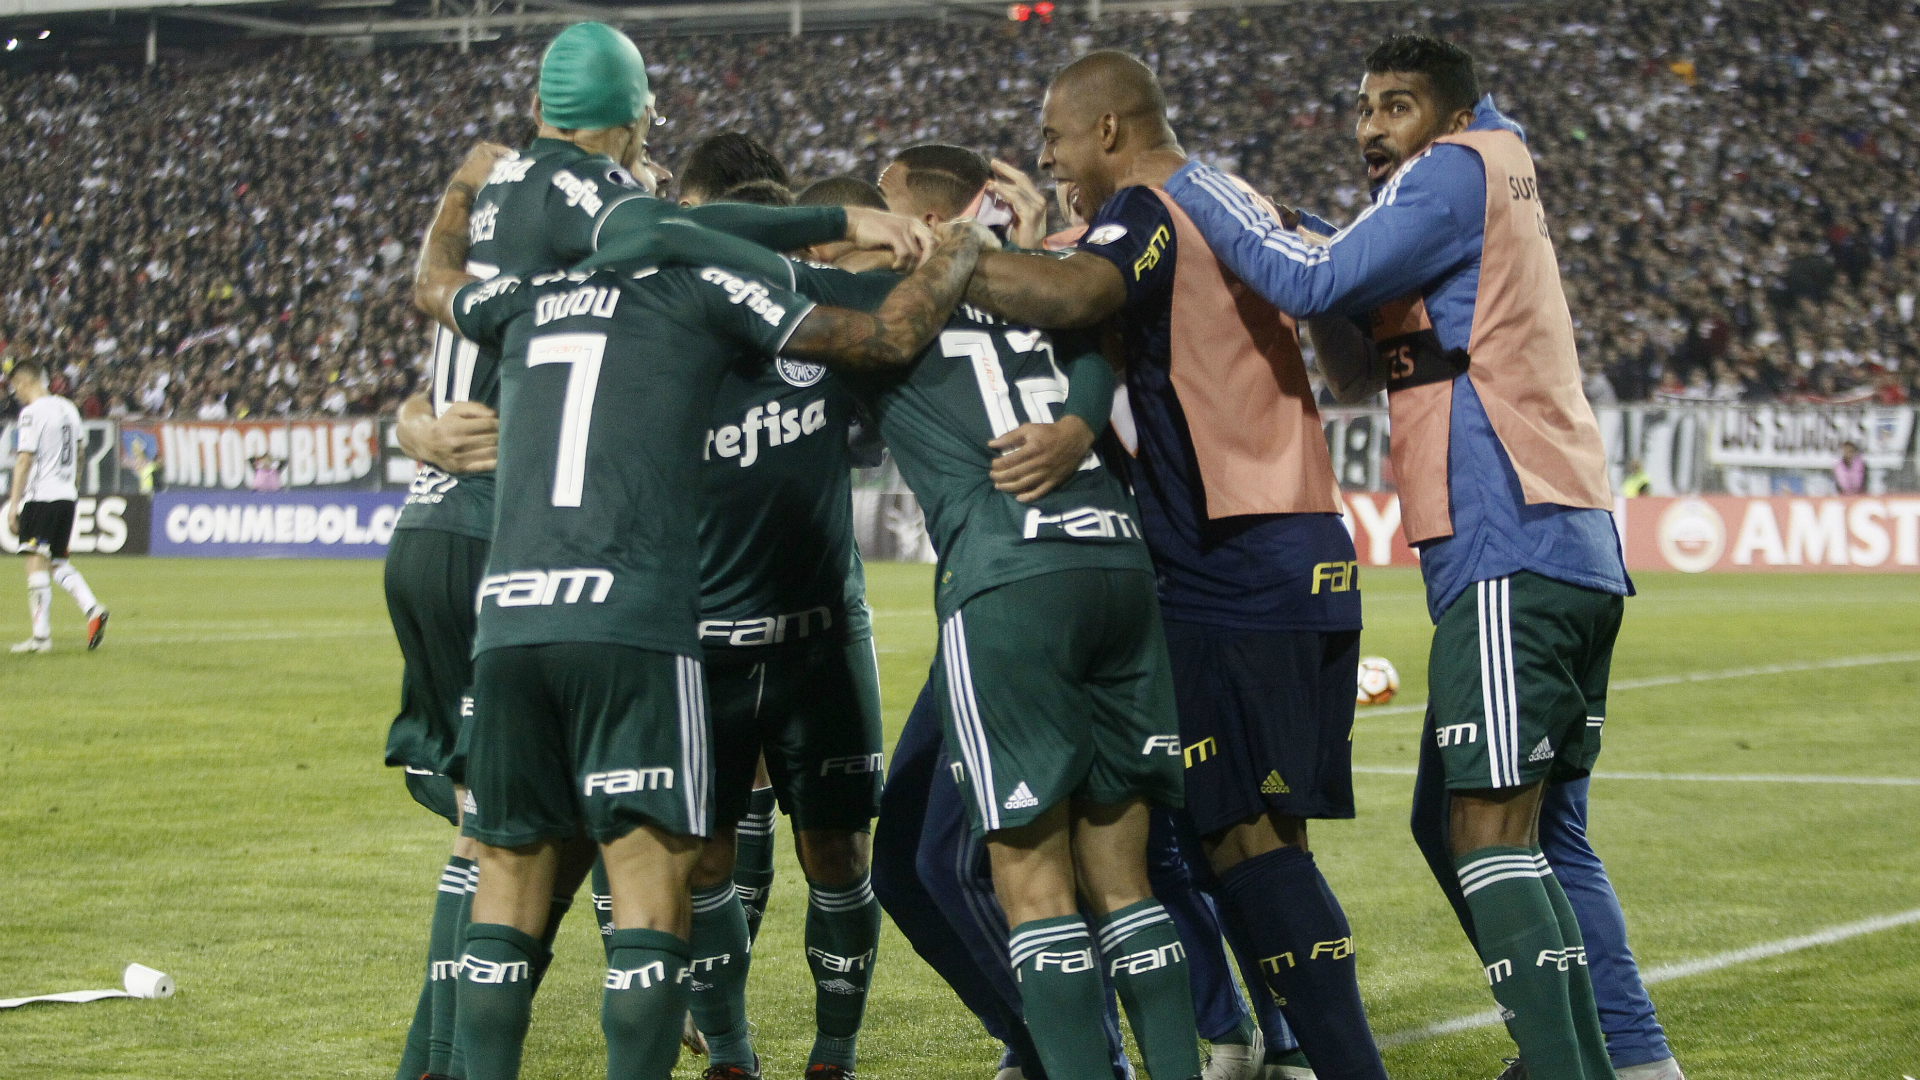 Colo Colo 0 Palmeiras 2: Scolari's men poised for Libertadores SFs